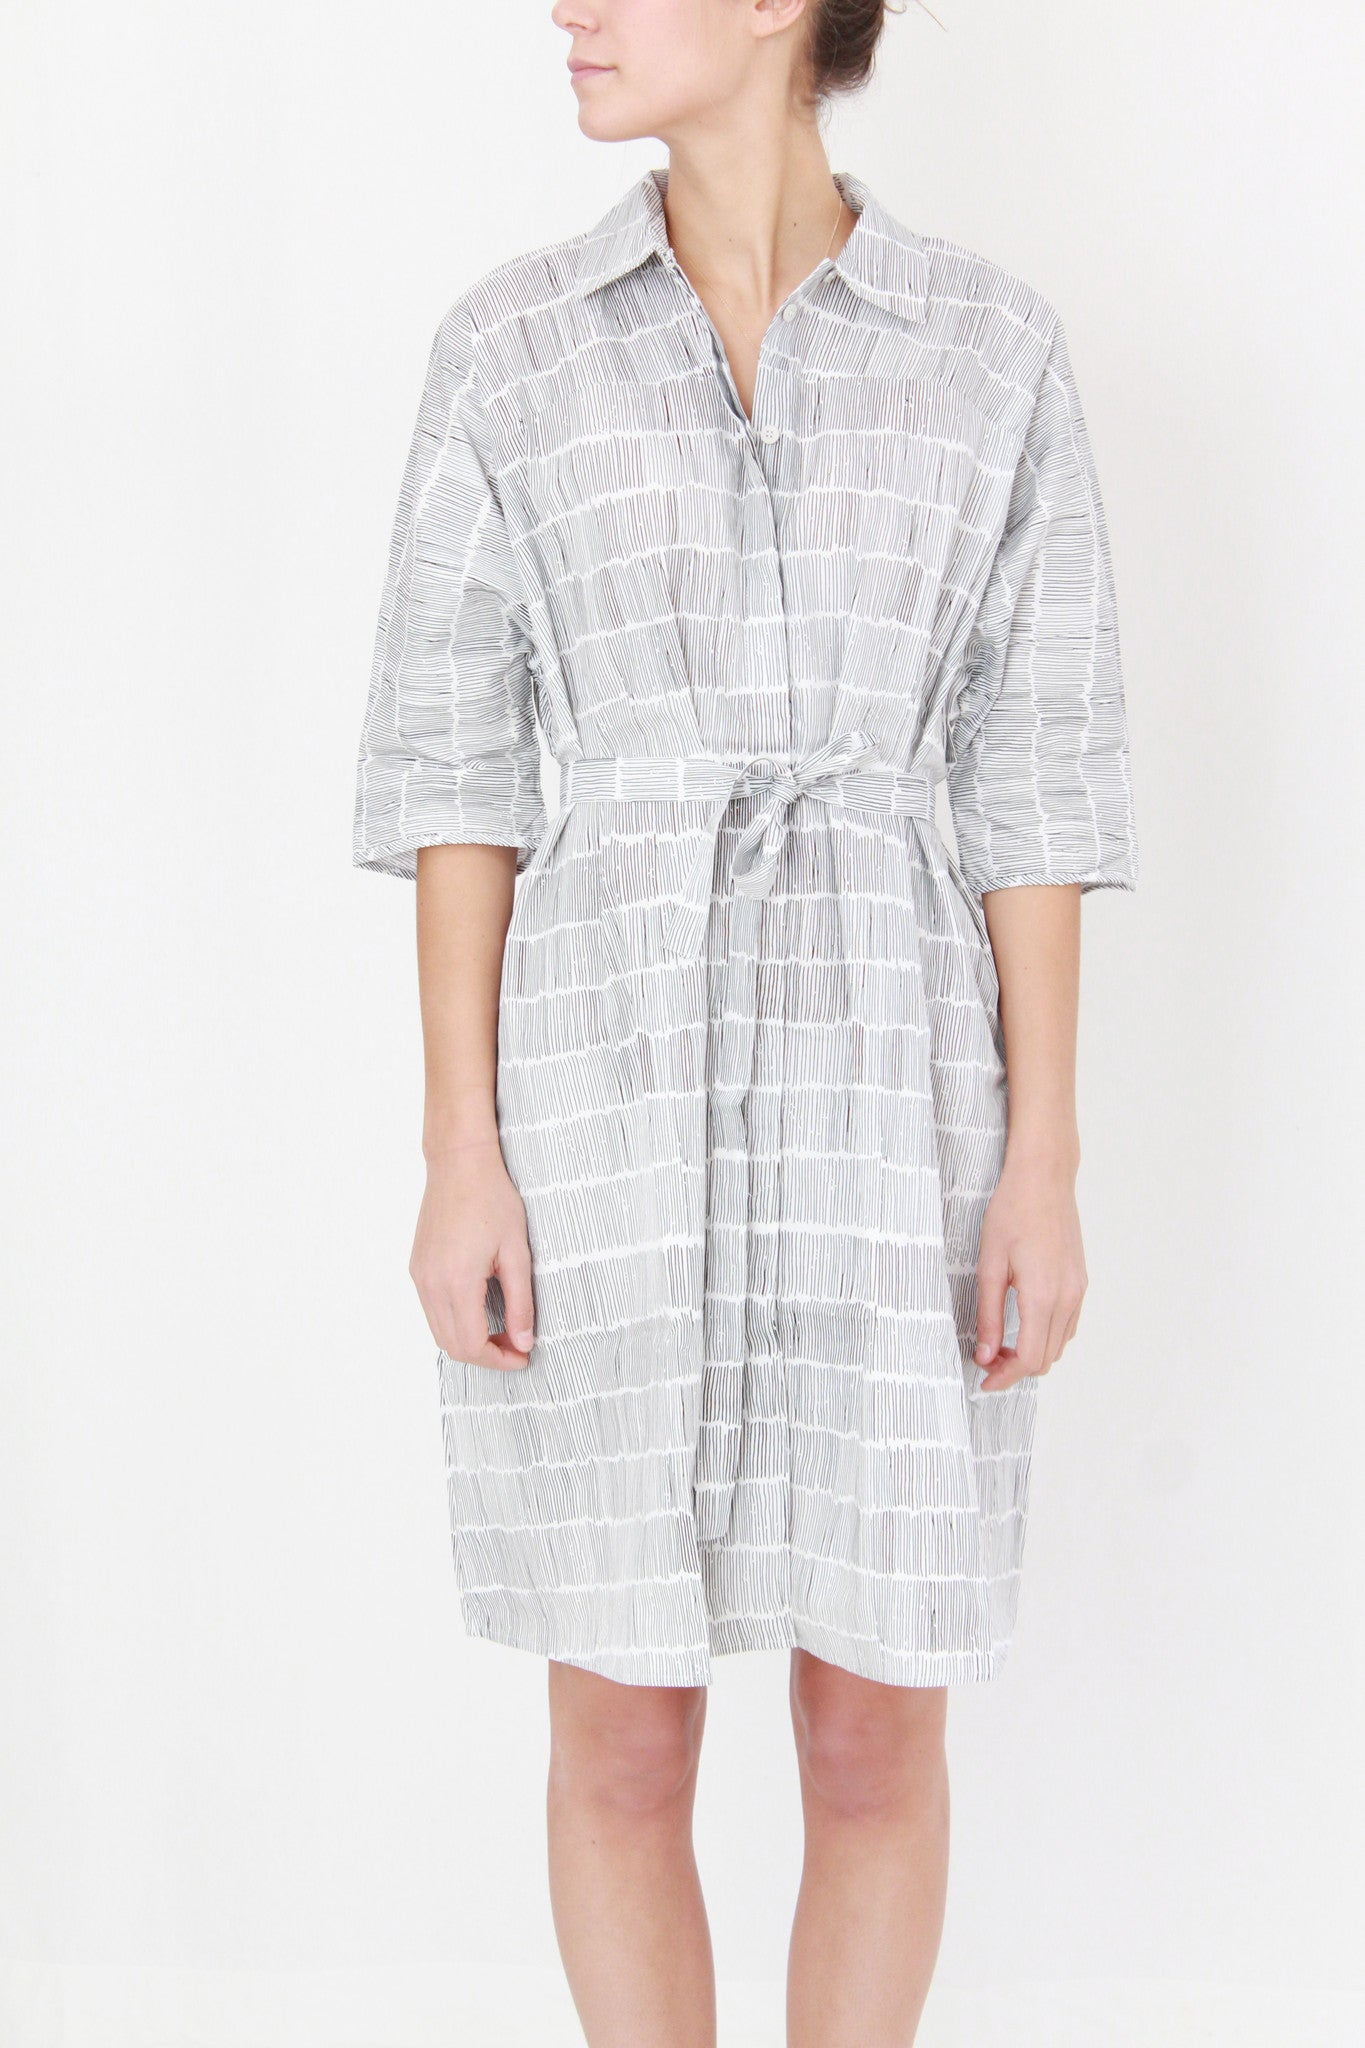 Beklina / Kowtow Etched Dress Dashes On White